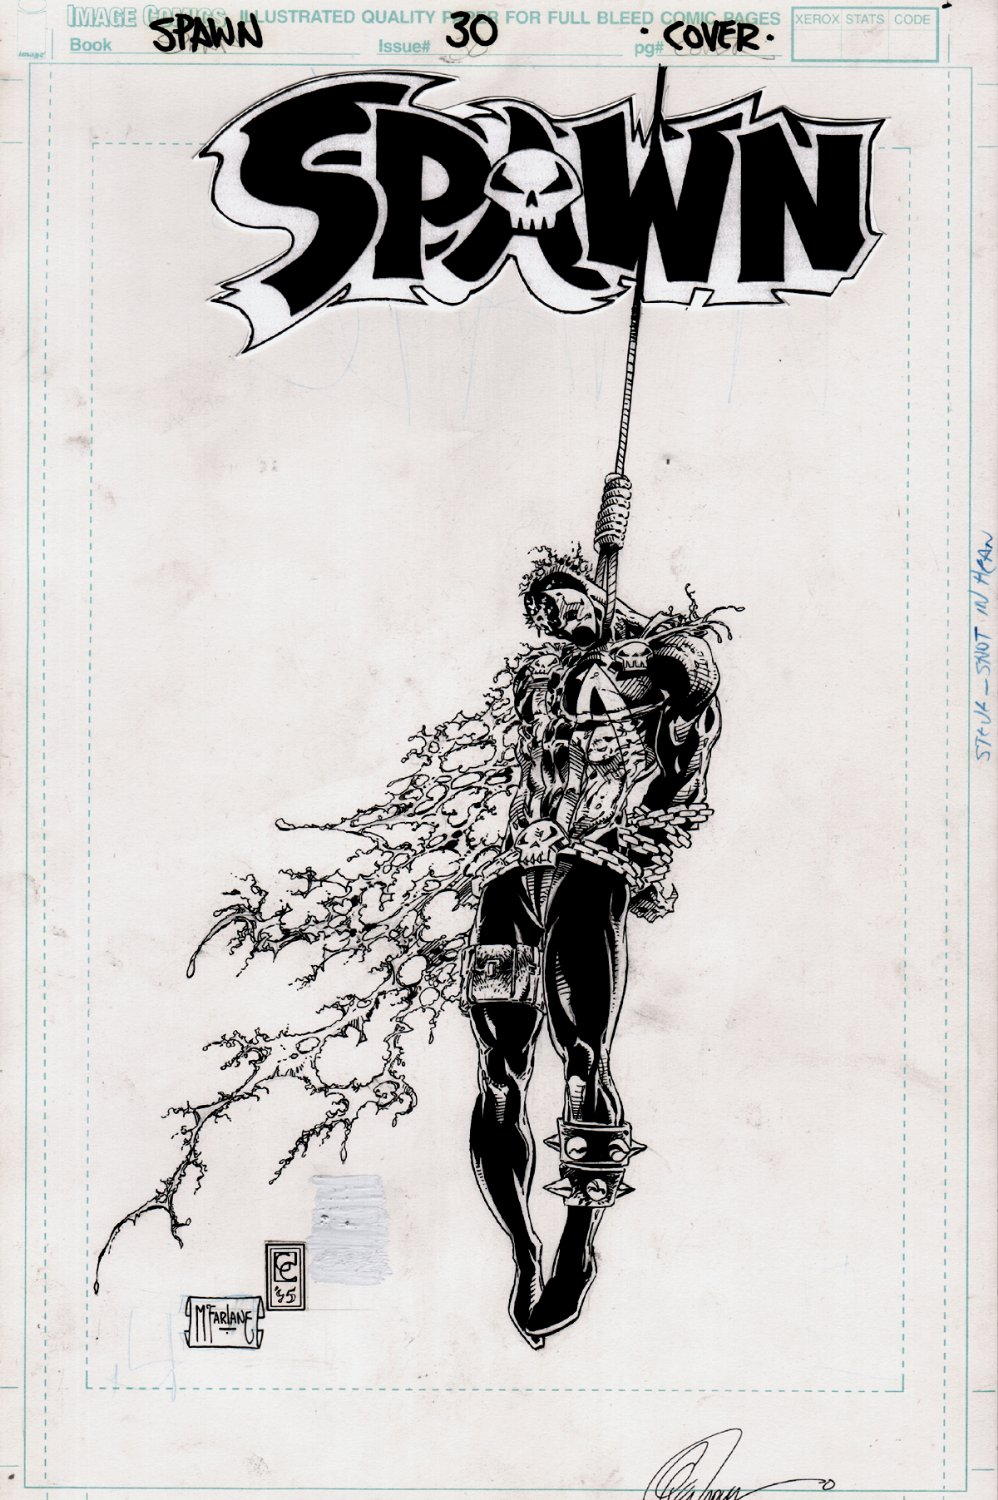 Spawn #30 Cover (TODD McFARLANE PENCILS & INKS, WITH CAPULLO!) 1995